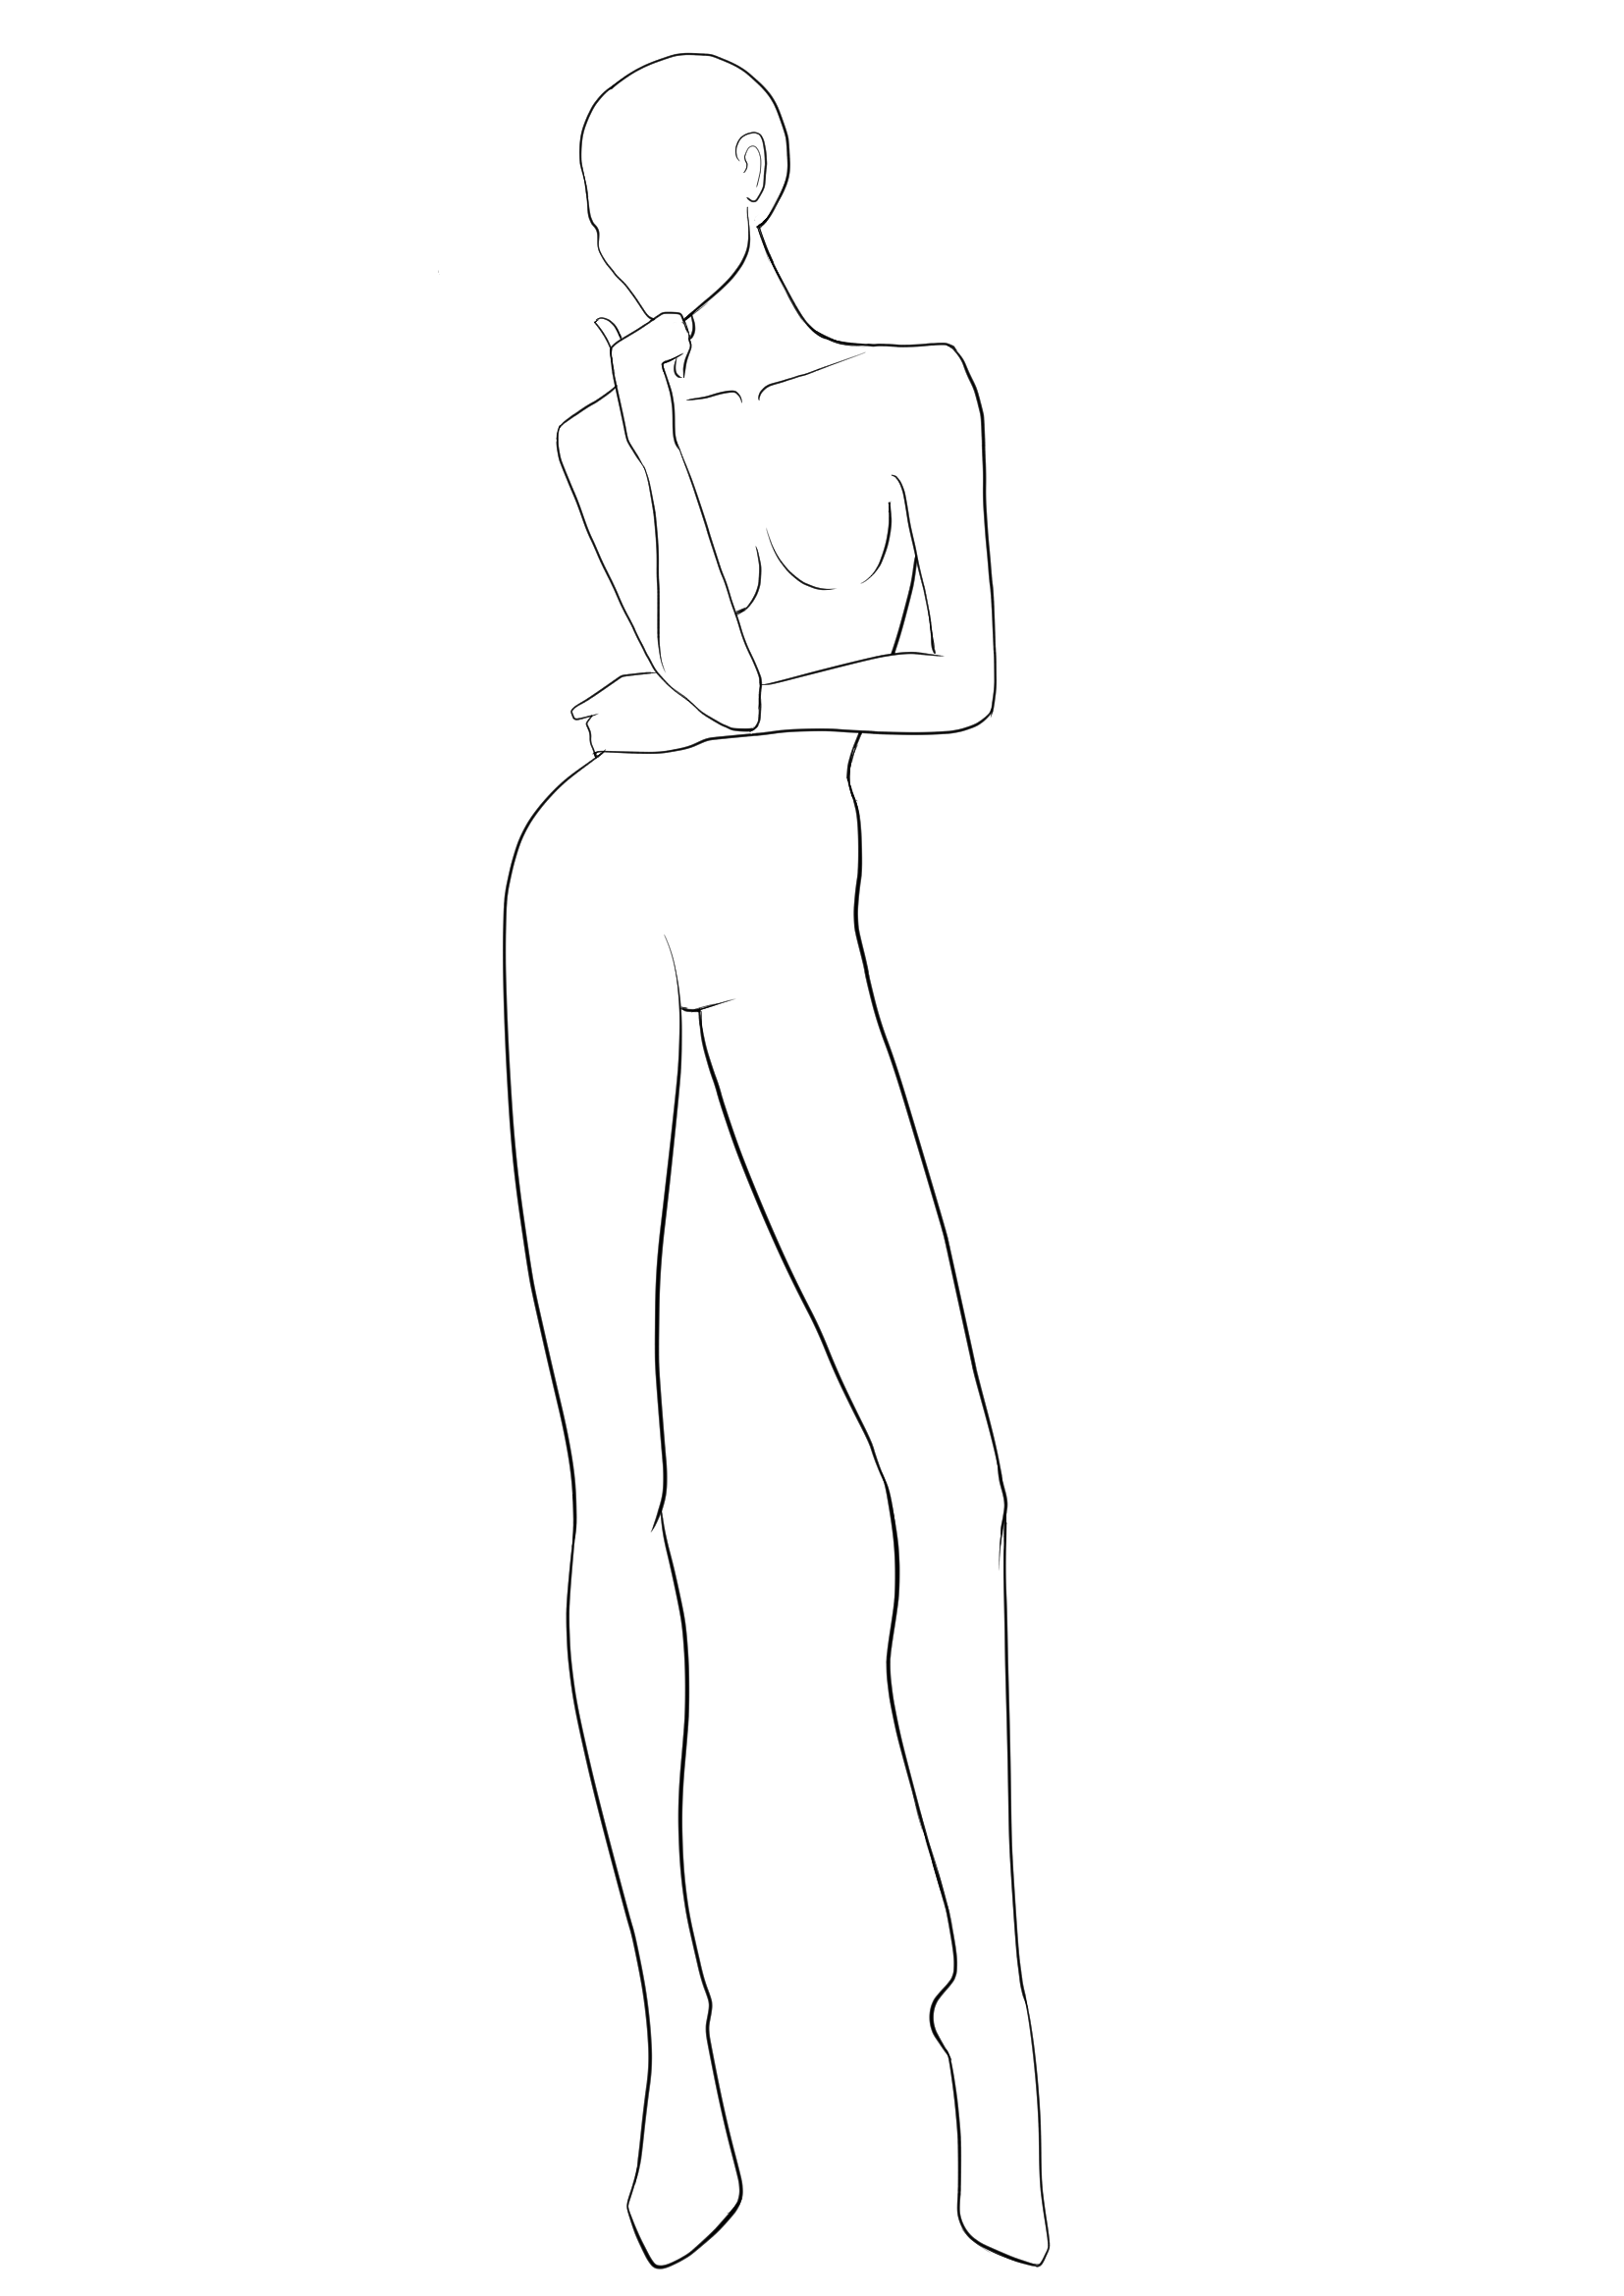 Delightful Front View Fashion Figure Template For Designing Fashion Sketches. Great Pictures